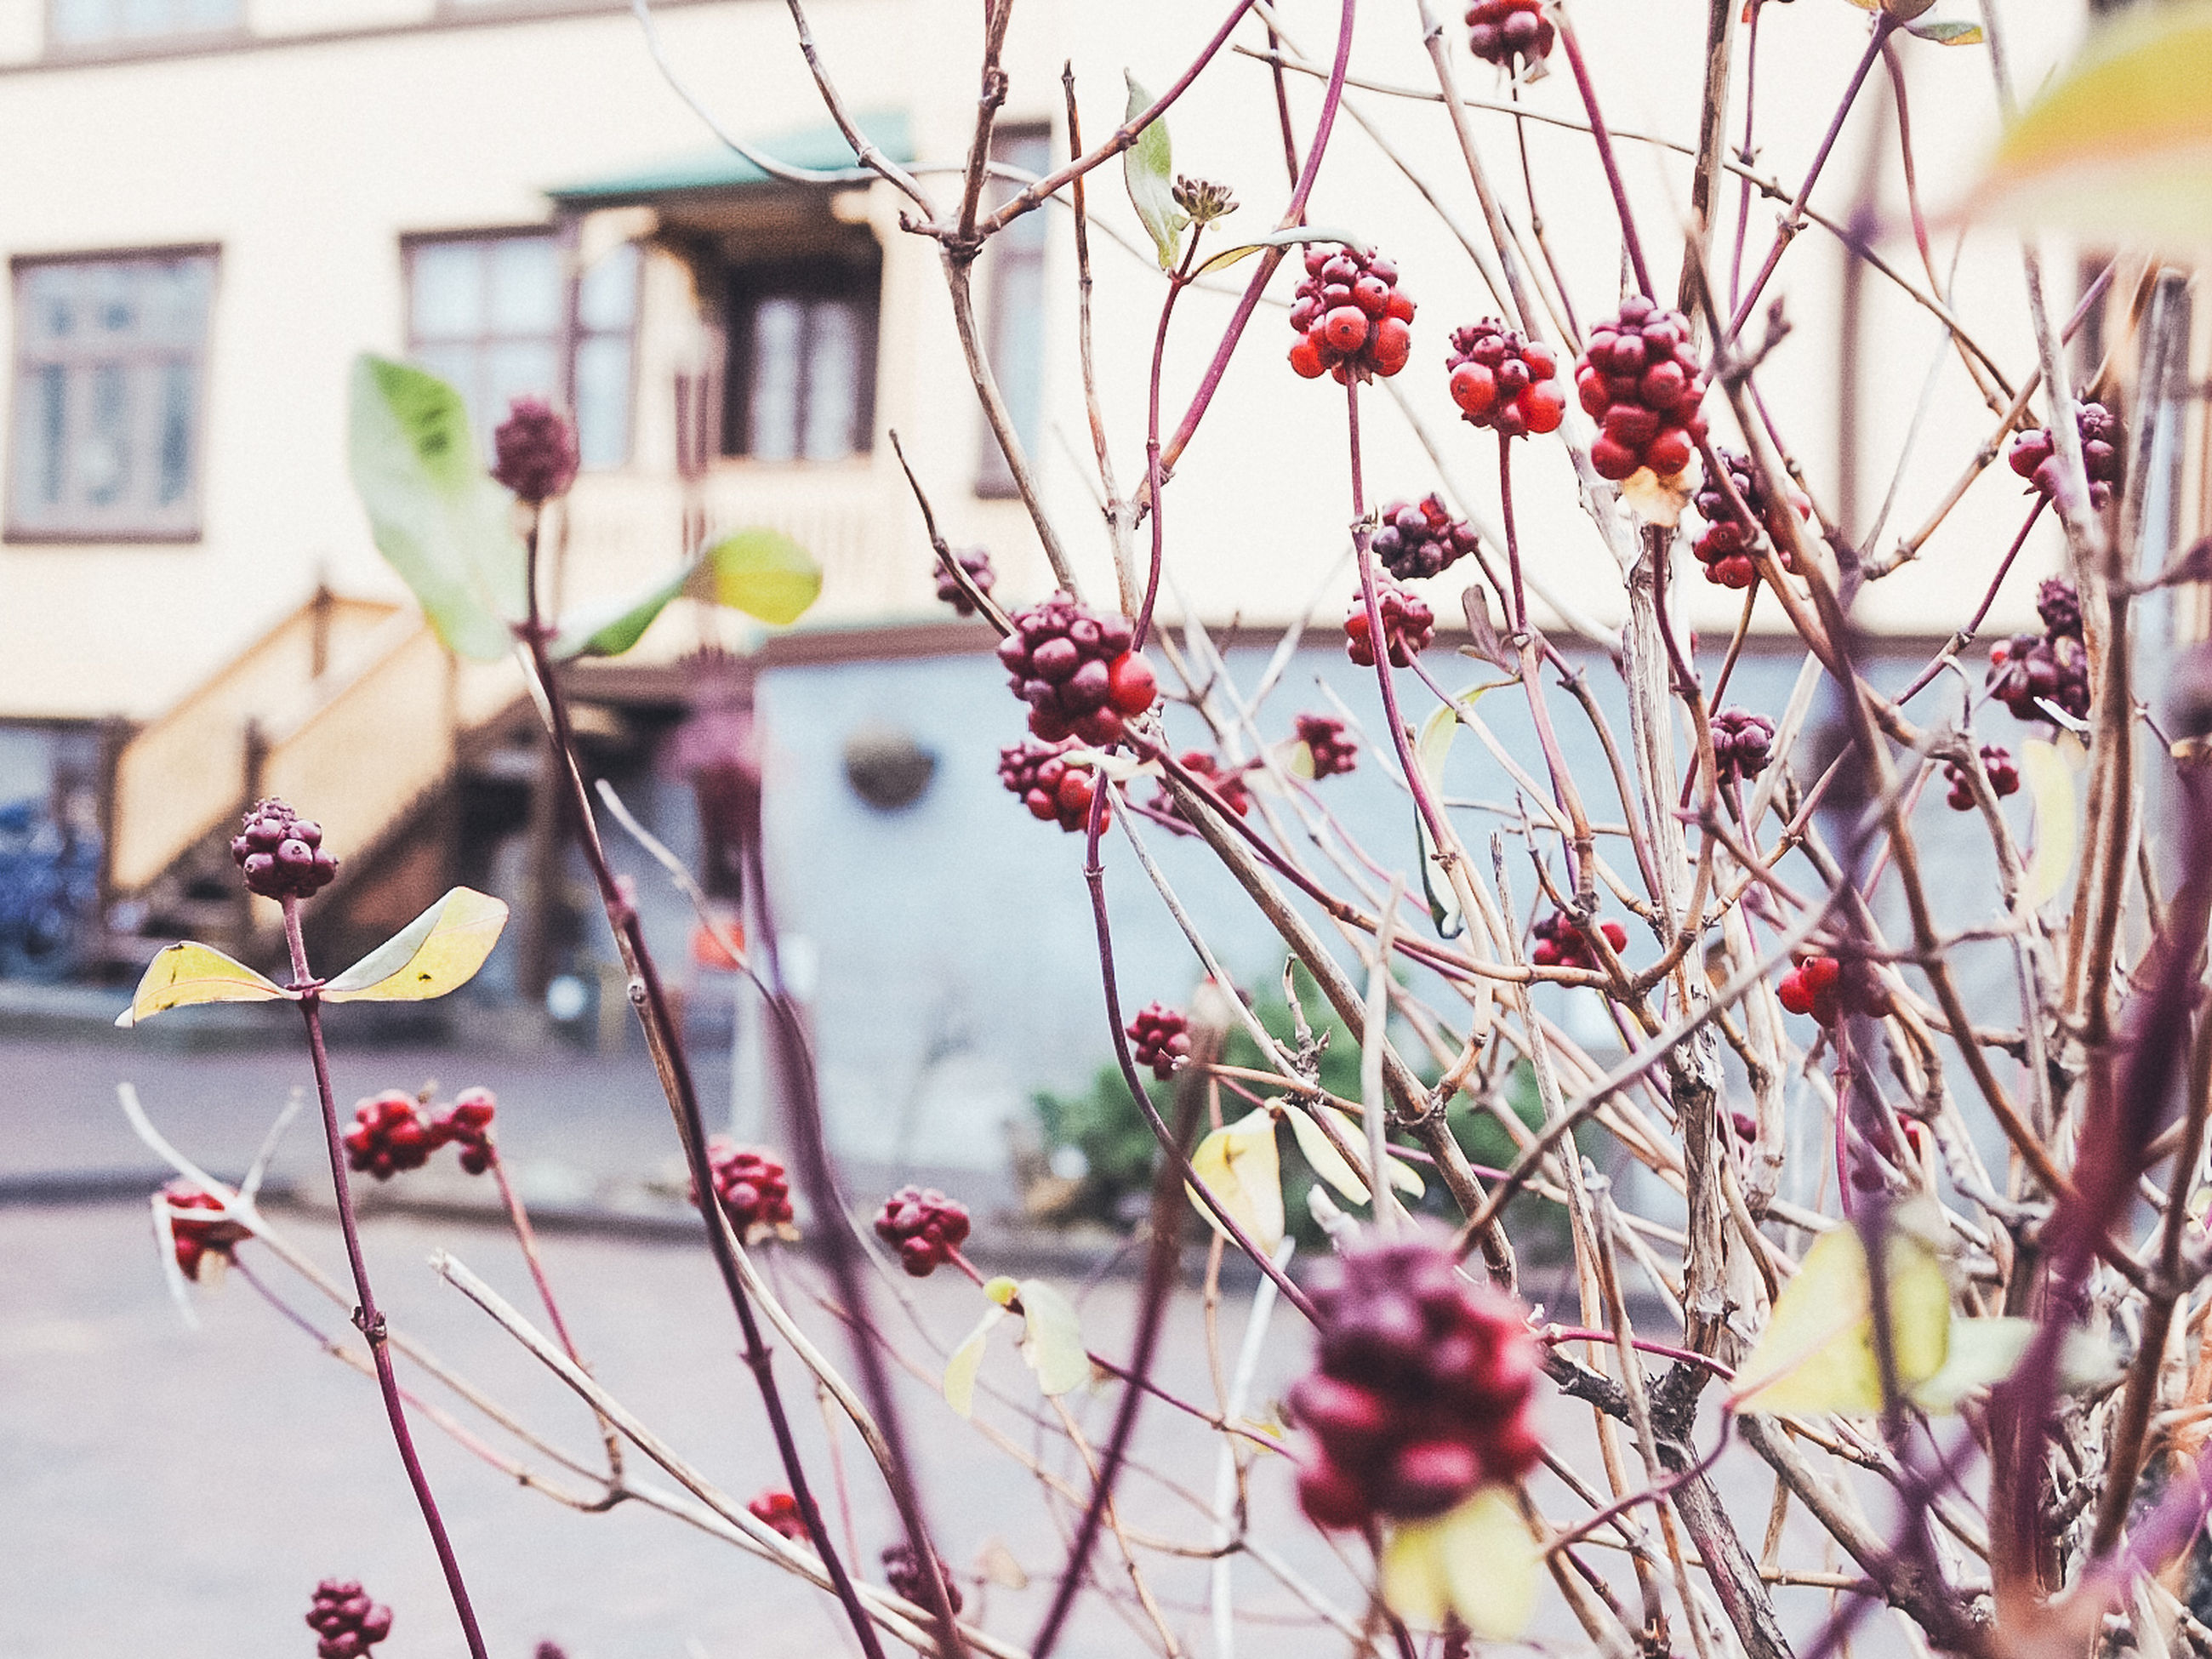 plant, tree, branch, growth, flower, focus on foreground, flowering plant, nature, day, building exterior, built structure, freshness, architecture, close-up, beauty in nature, no people, outdoors, fruit, selective focus, food and drink